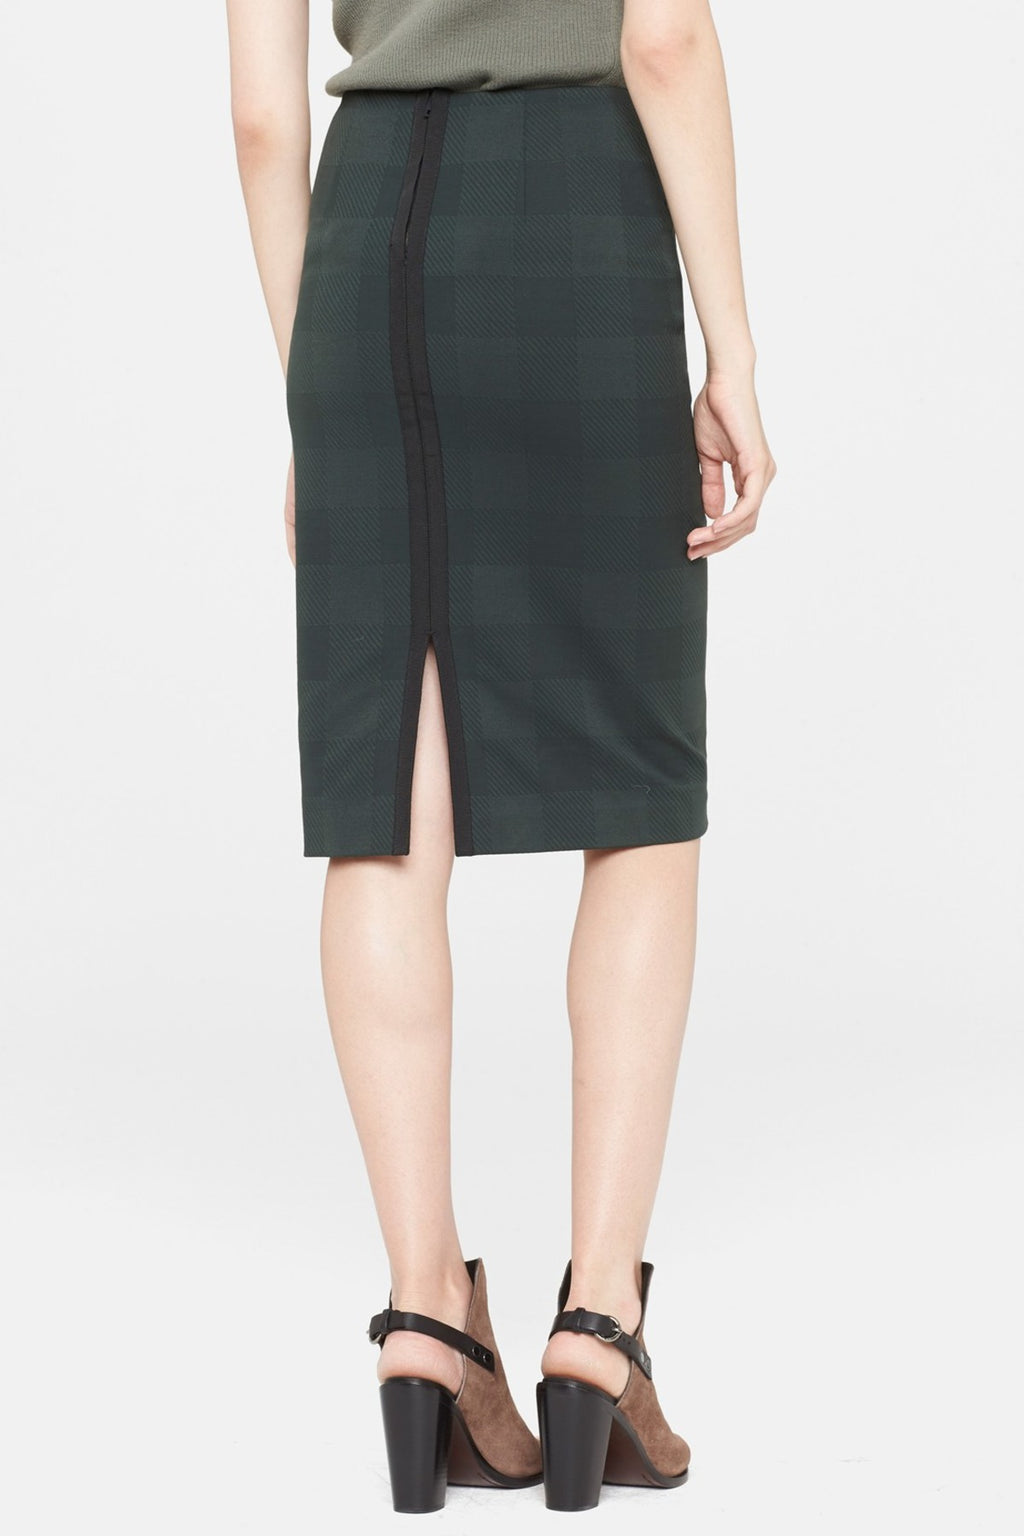 Rag & Bone 'Ora' Pencil Skirt